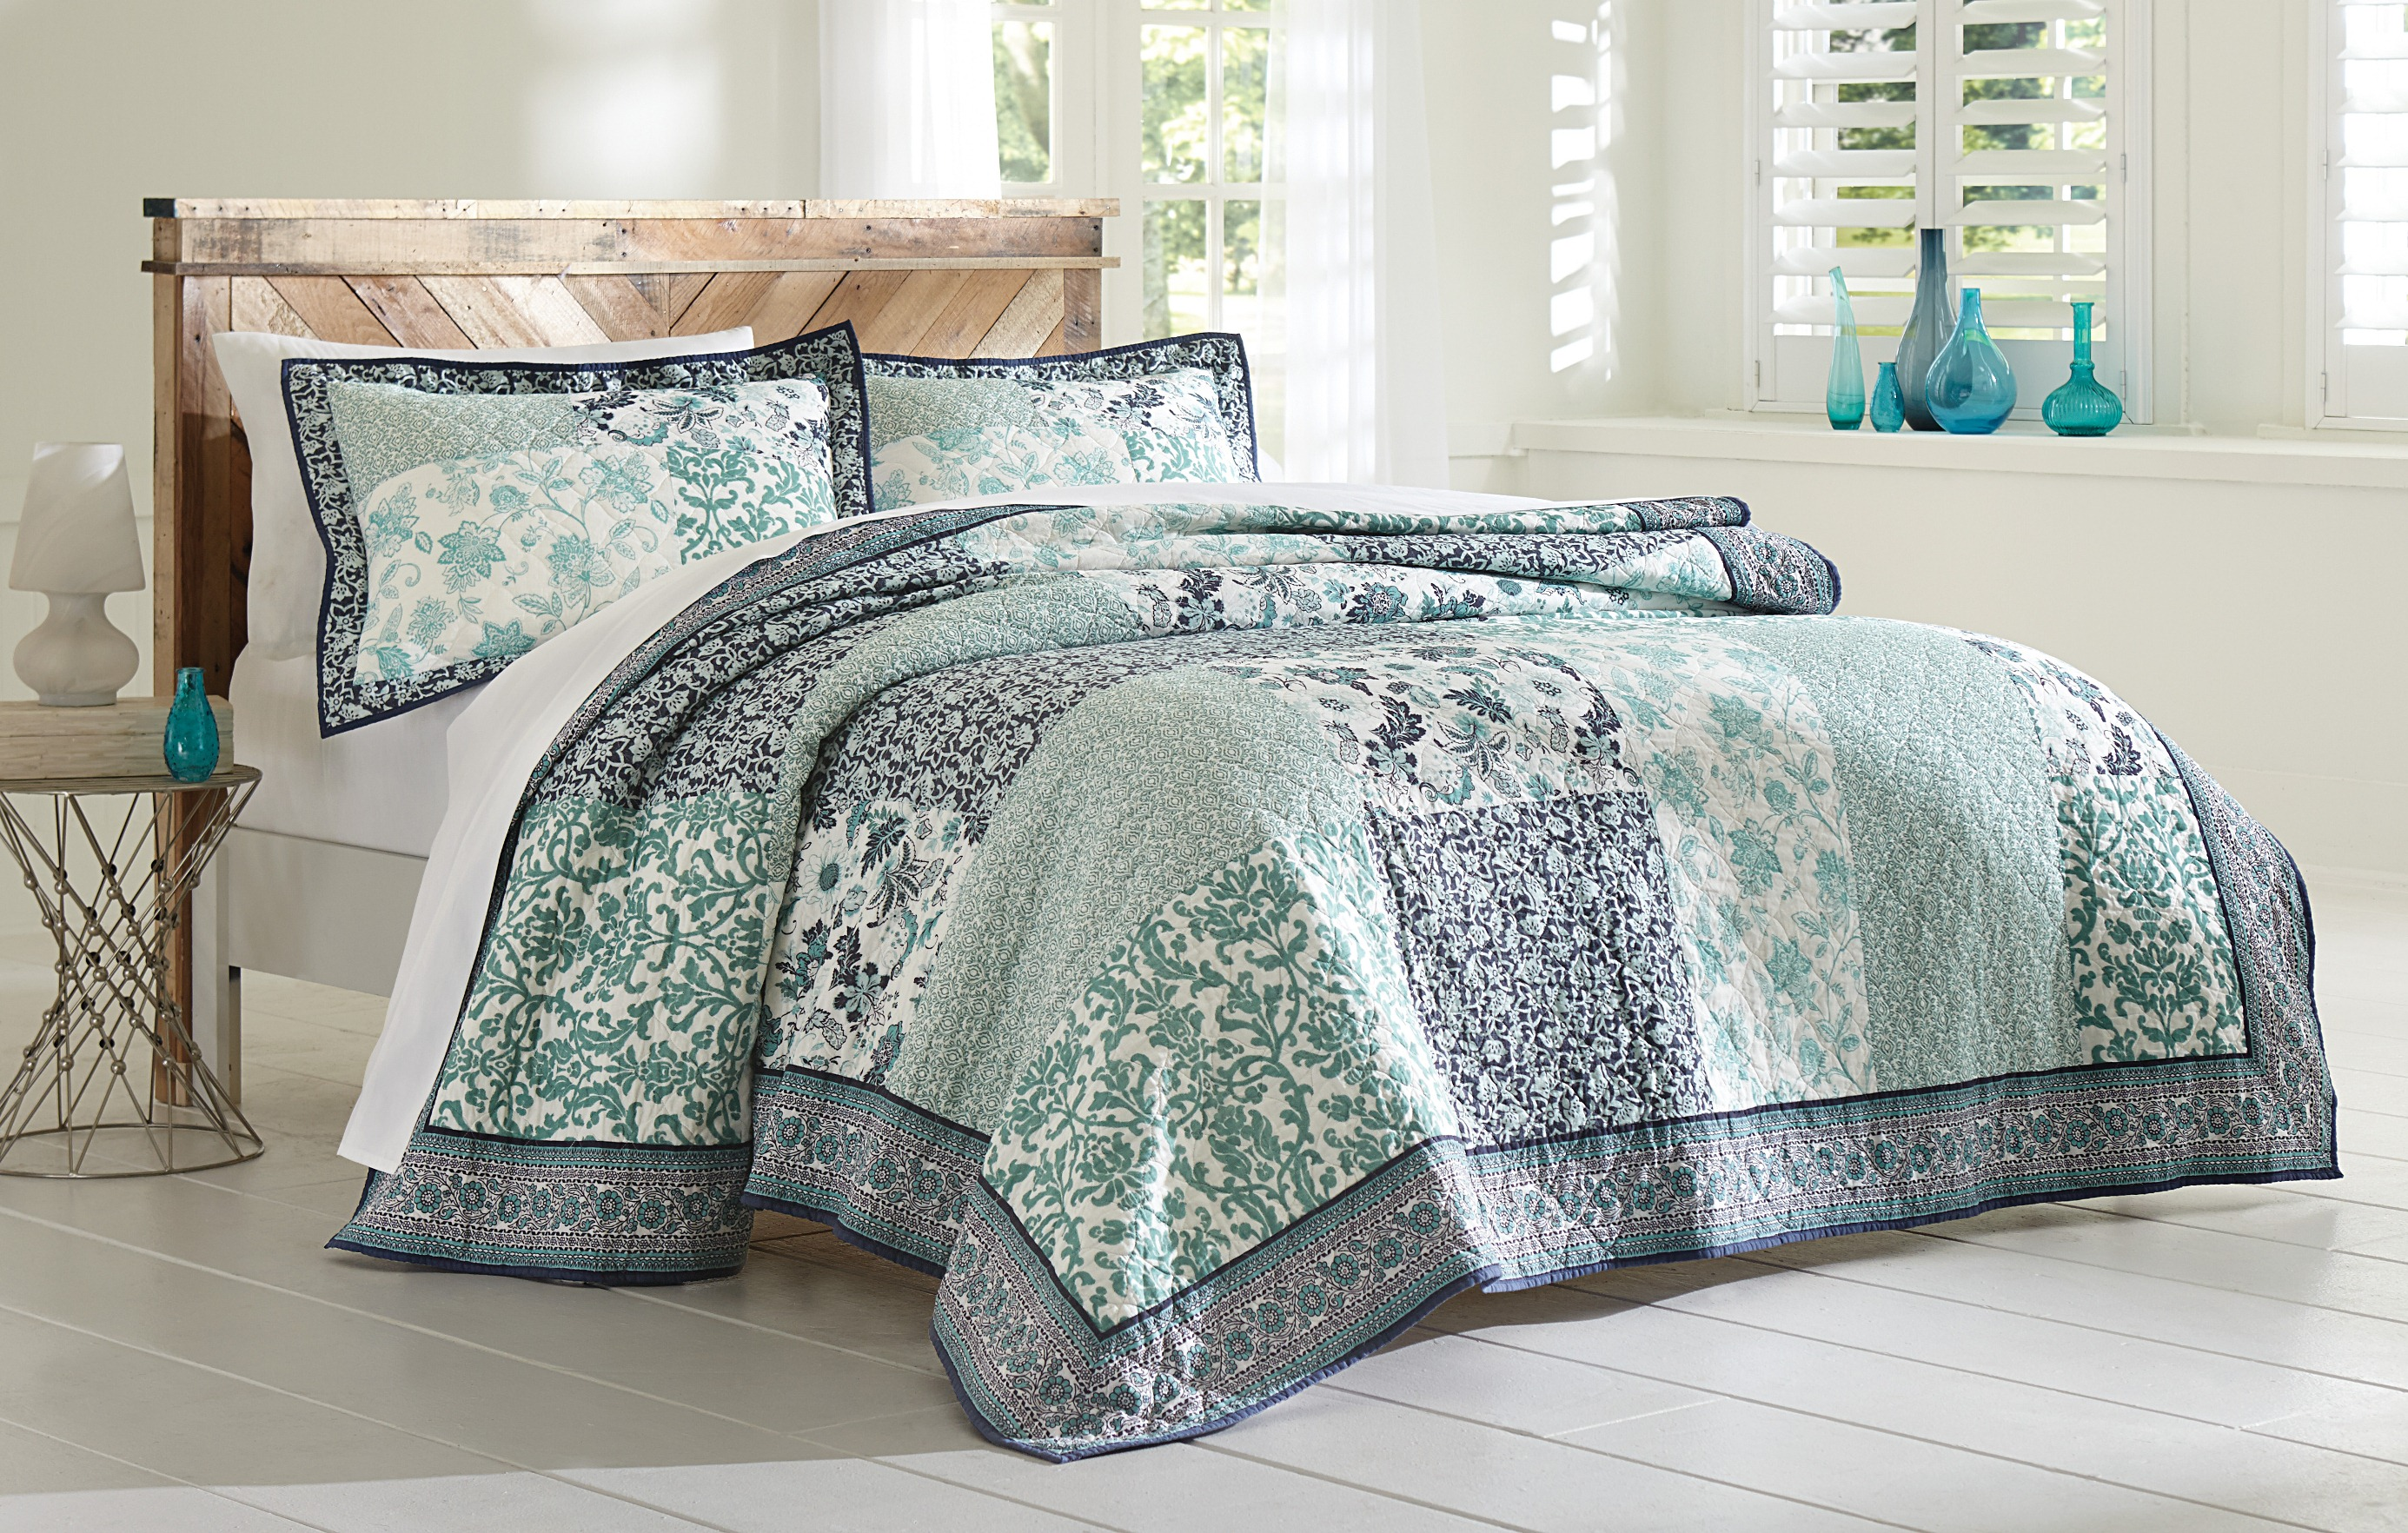 3-Piece Quilted Bedding Set - Floral Print